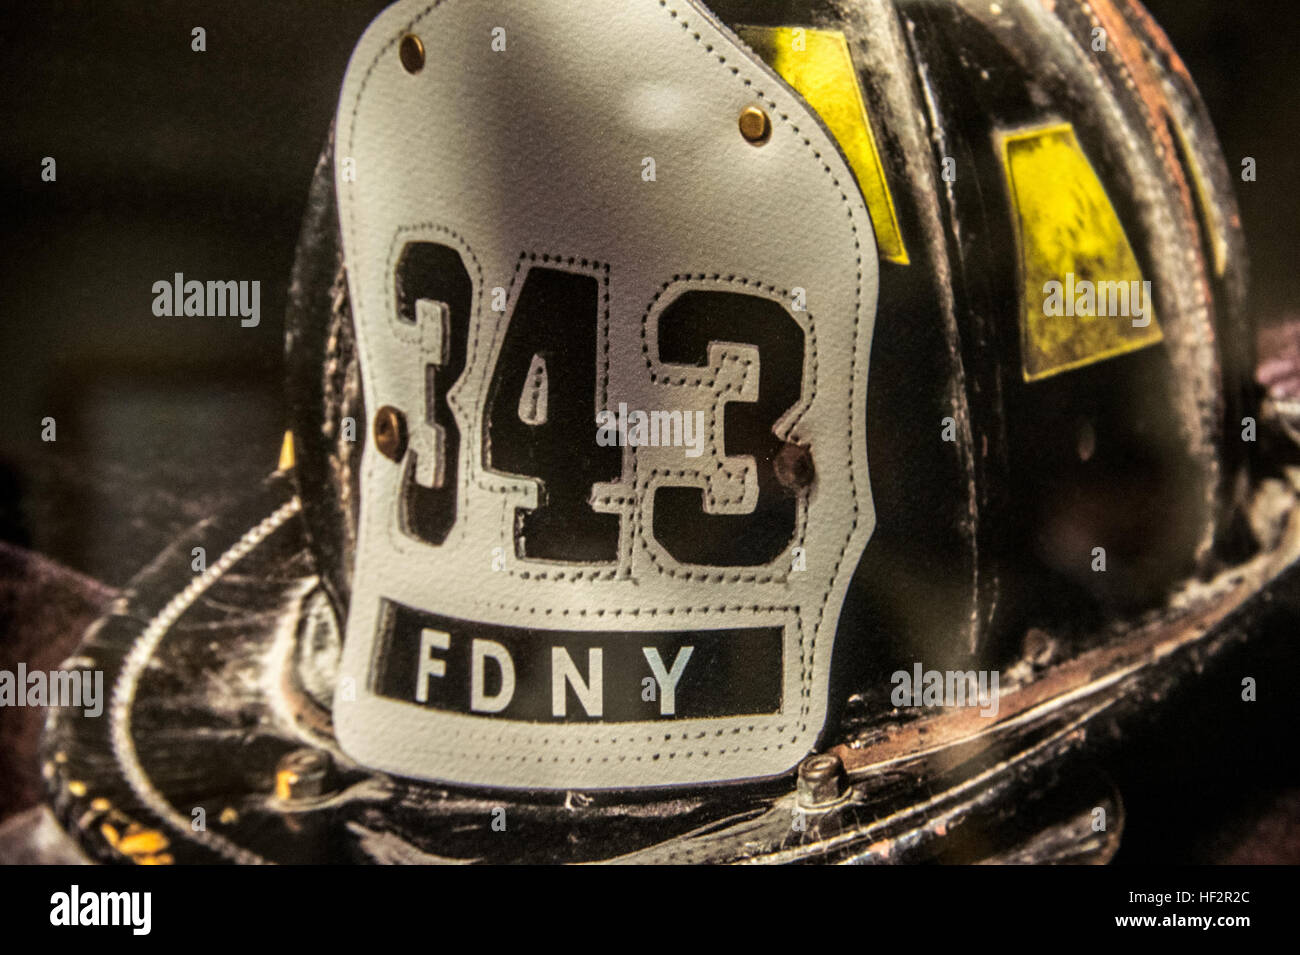 U.S. Army Chief of Staff Gen. Ray Odierno visited the Fire Department of New York (FDNY) Headquarters during his - Stock Image